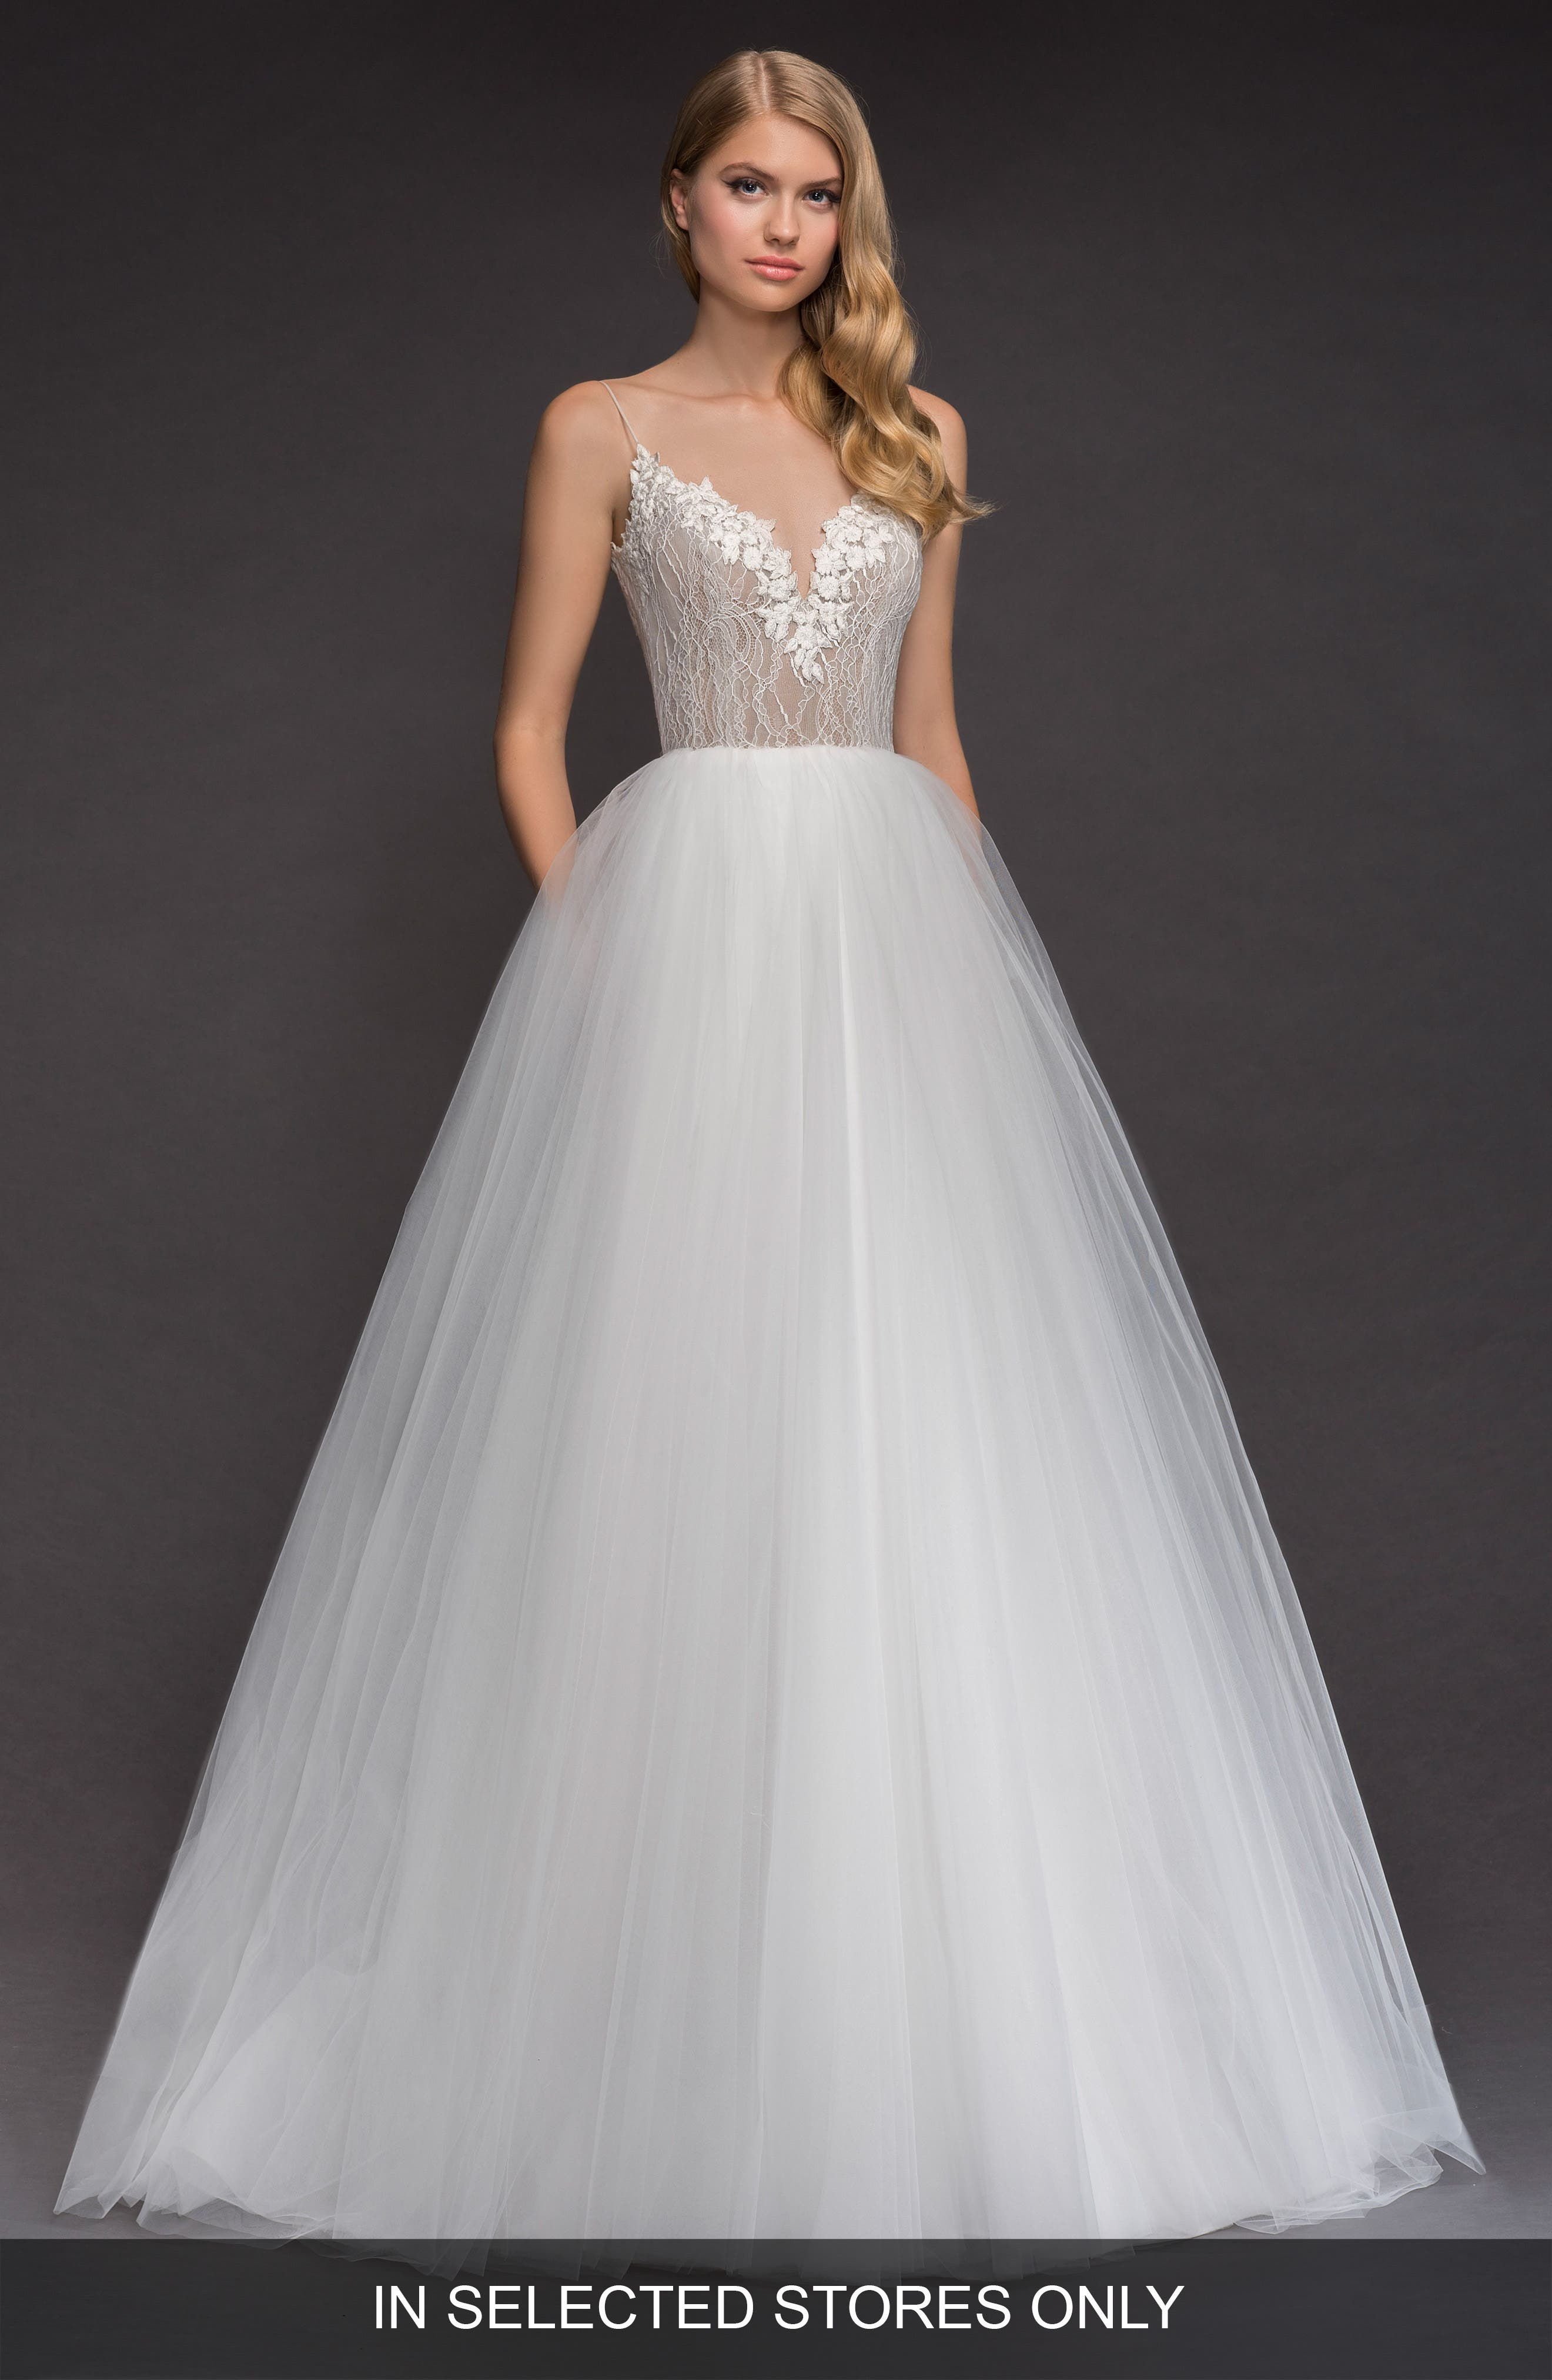 Brier Lace & Tulle Ballgown,                             Main thumbnail 1, color,                             IVORY